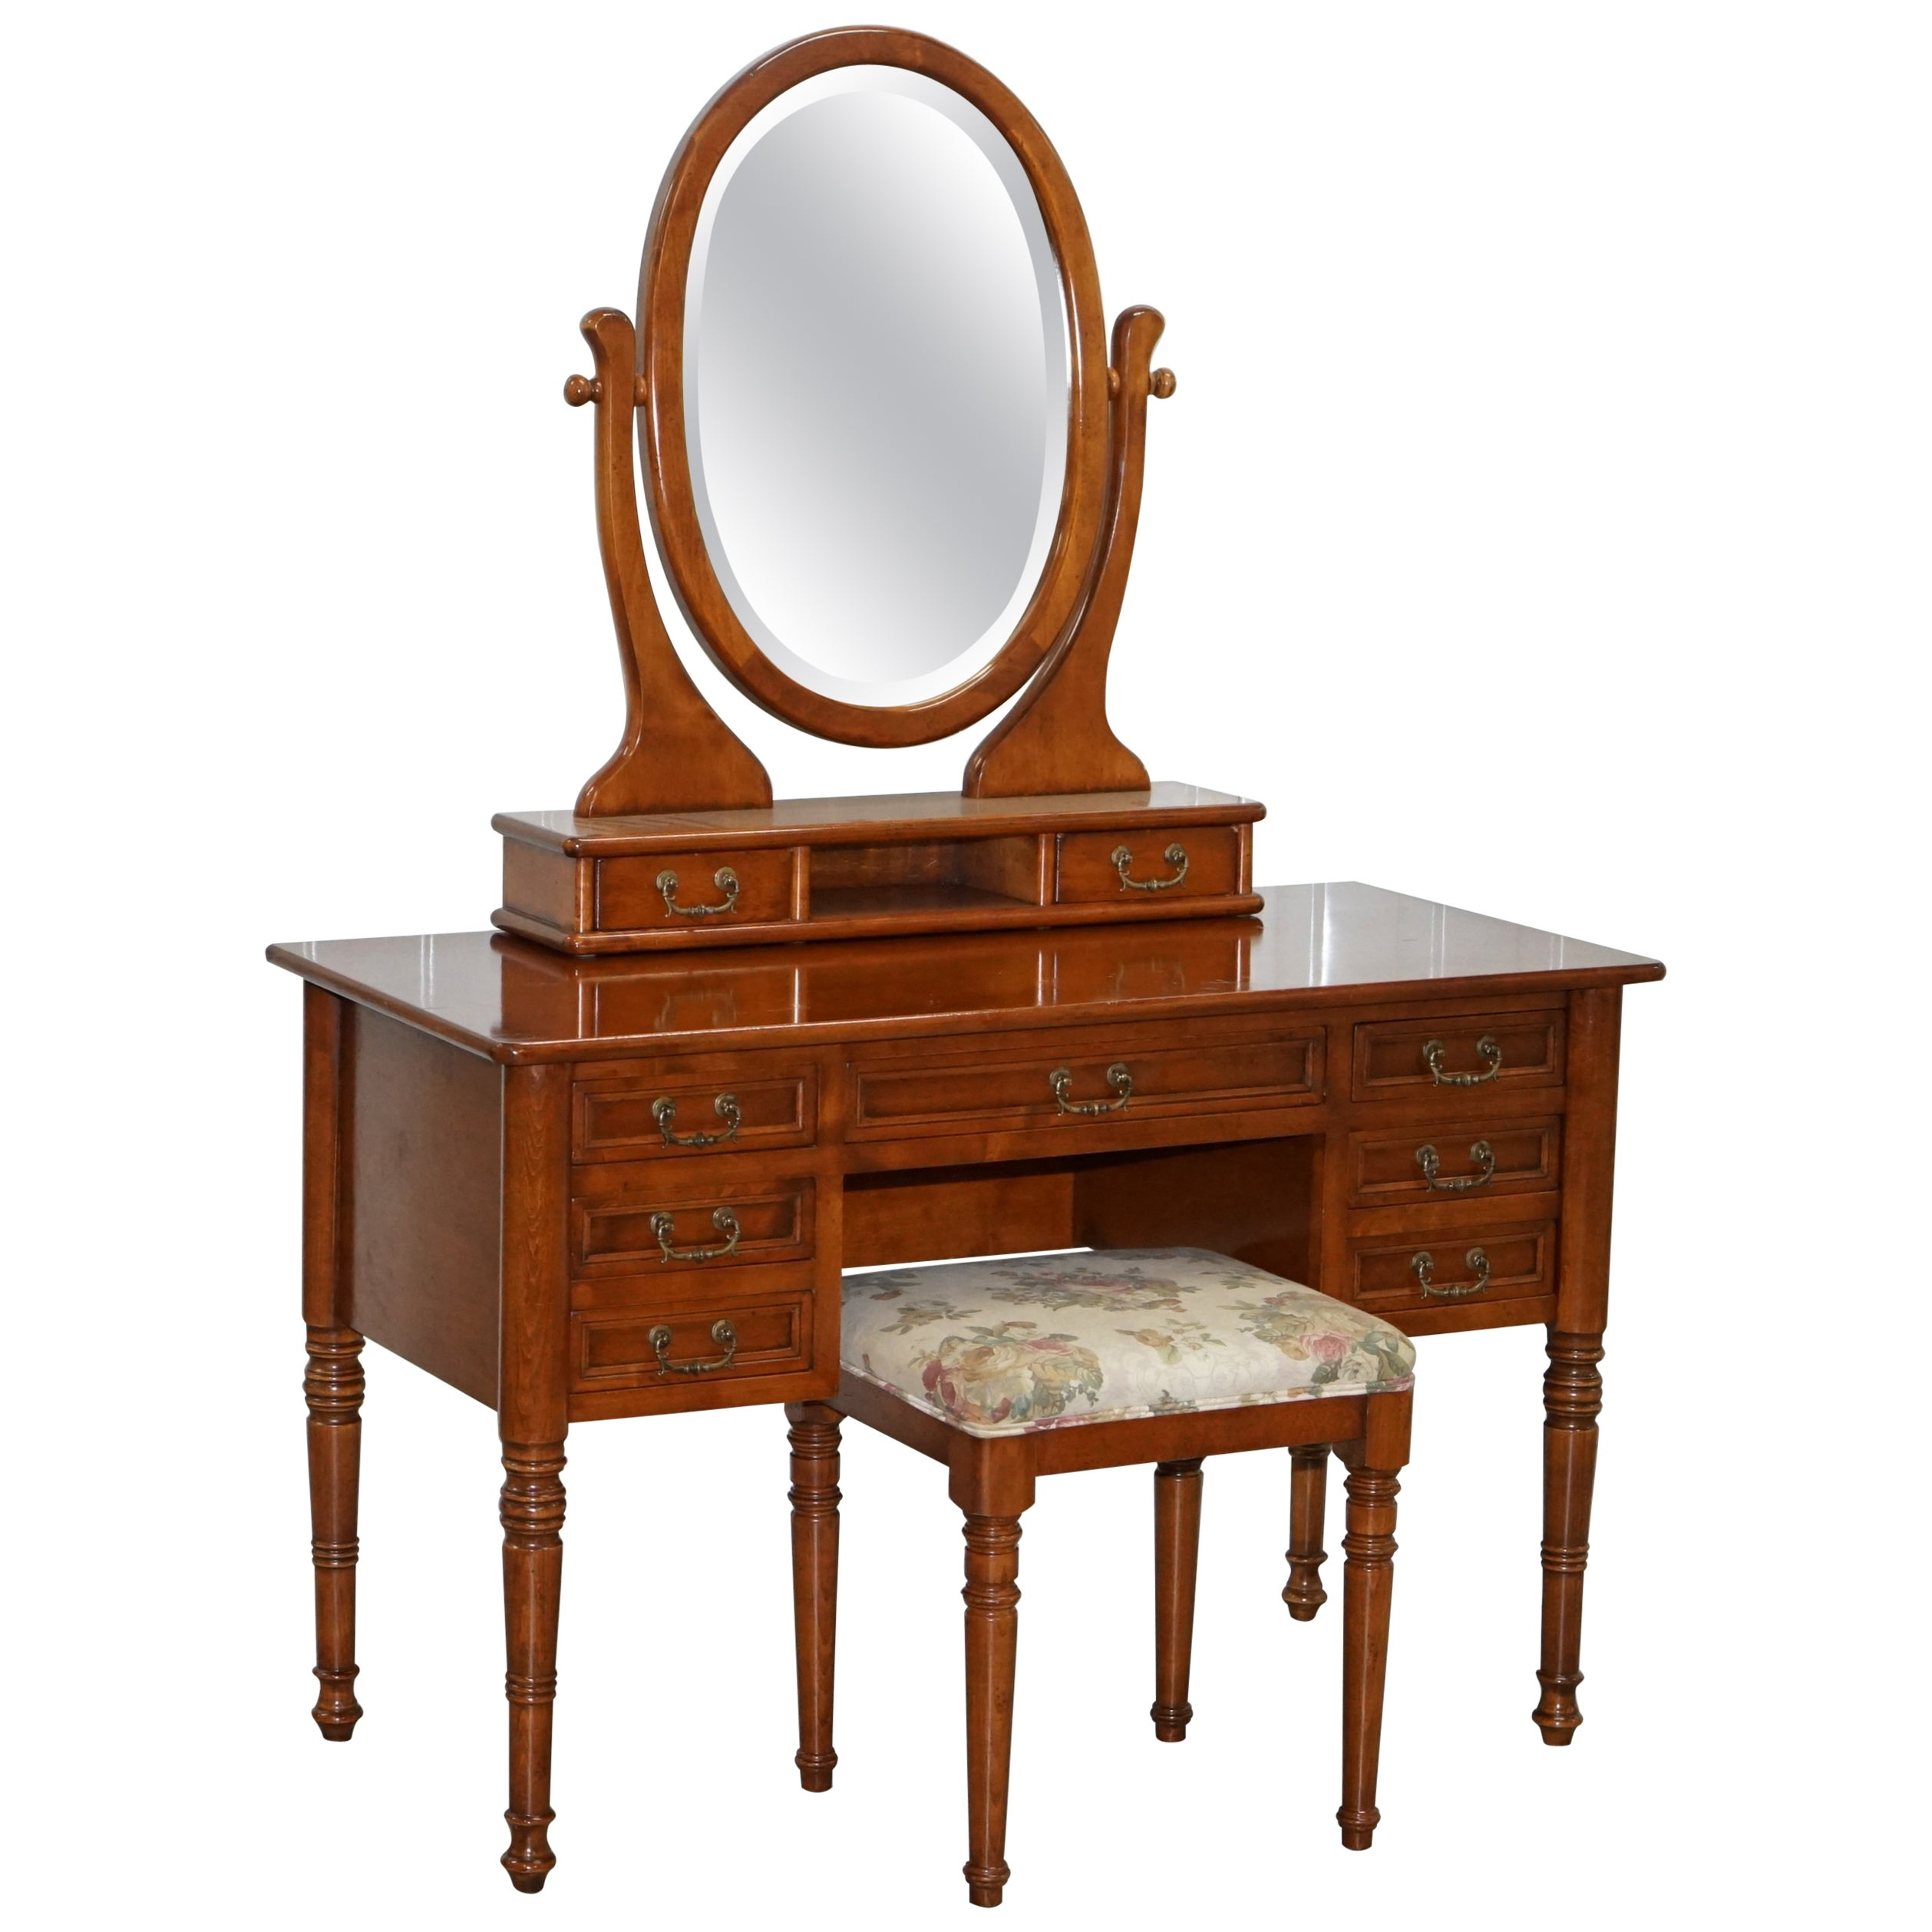 Dressing Table Mirror And Stool Made In Italy By Consorzio Mobili Mahogany Frame For At 1stdibs